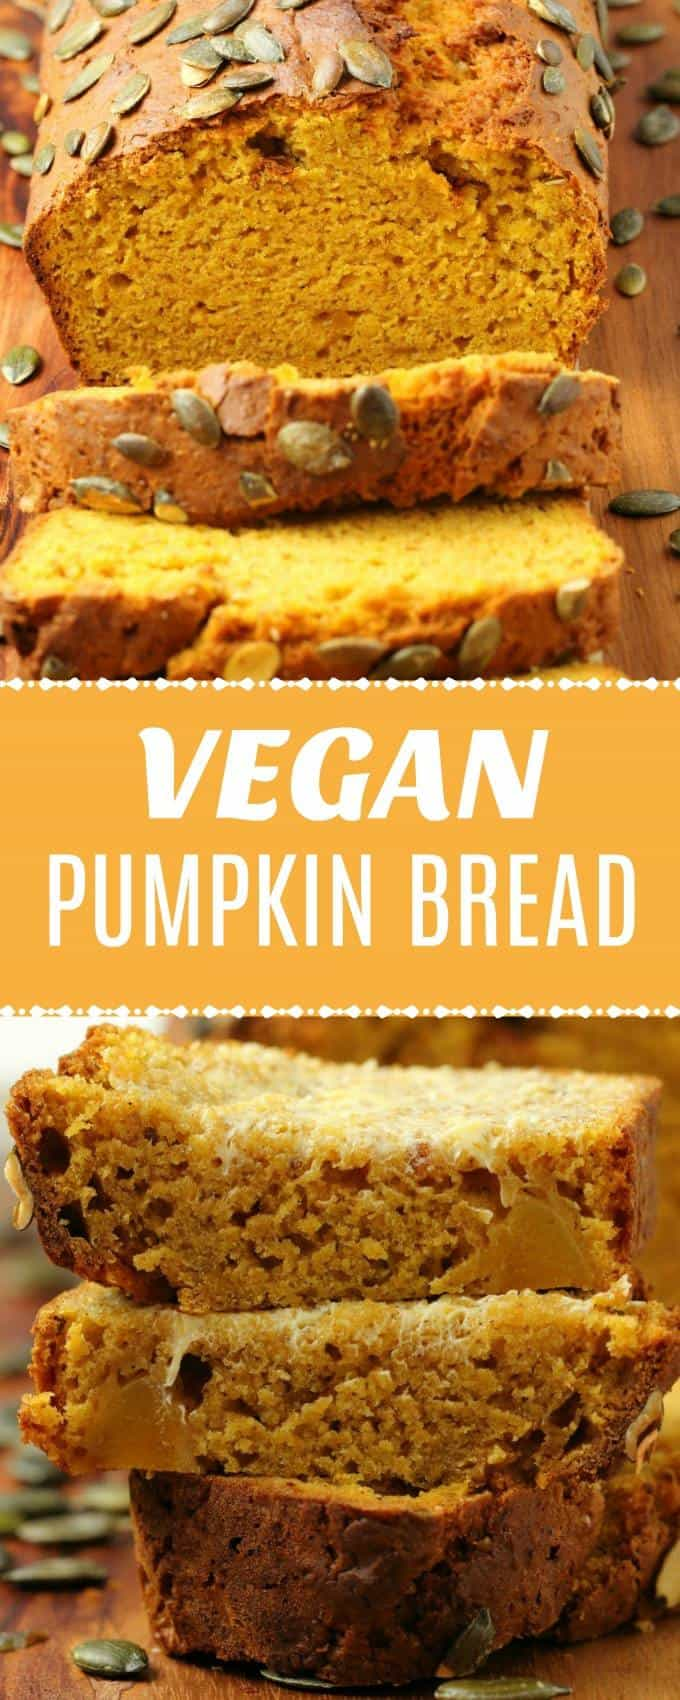 Moist and deliciously spiced vegan pumpkin bread topped with pumpkin seeds and packed with fall flavors! Perfectly sweet and wonderfully simple. | lovingitvegan.com